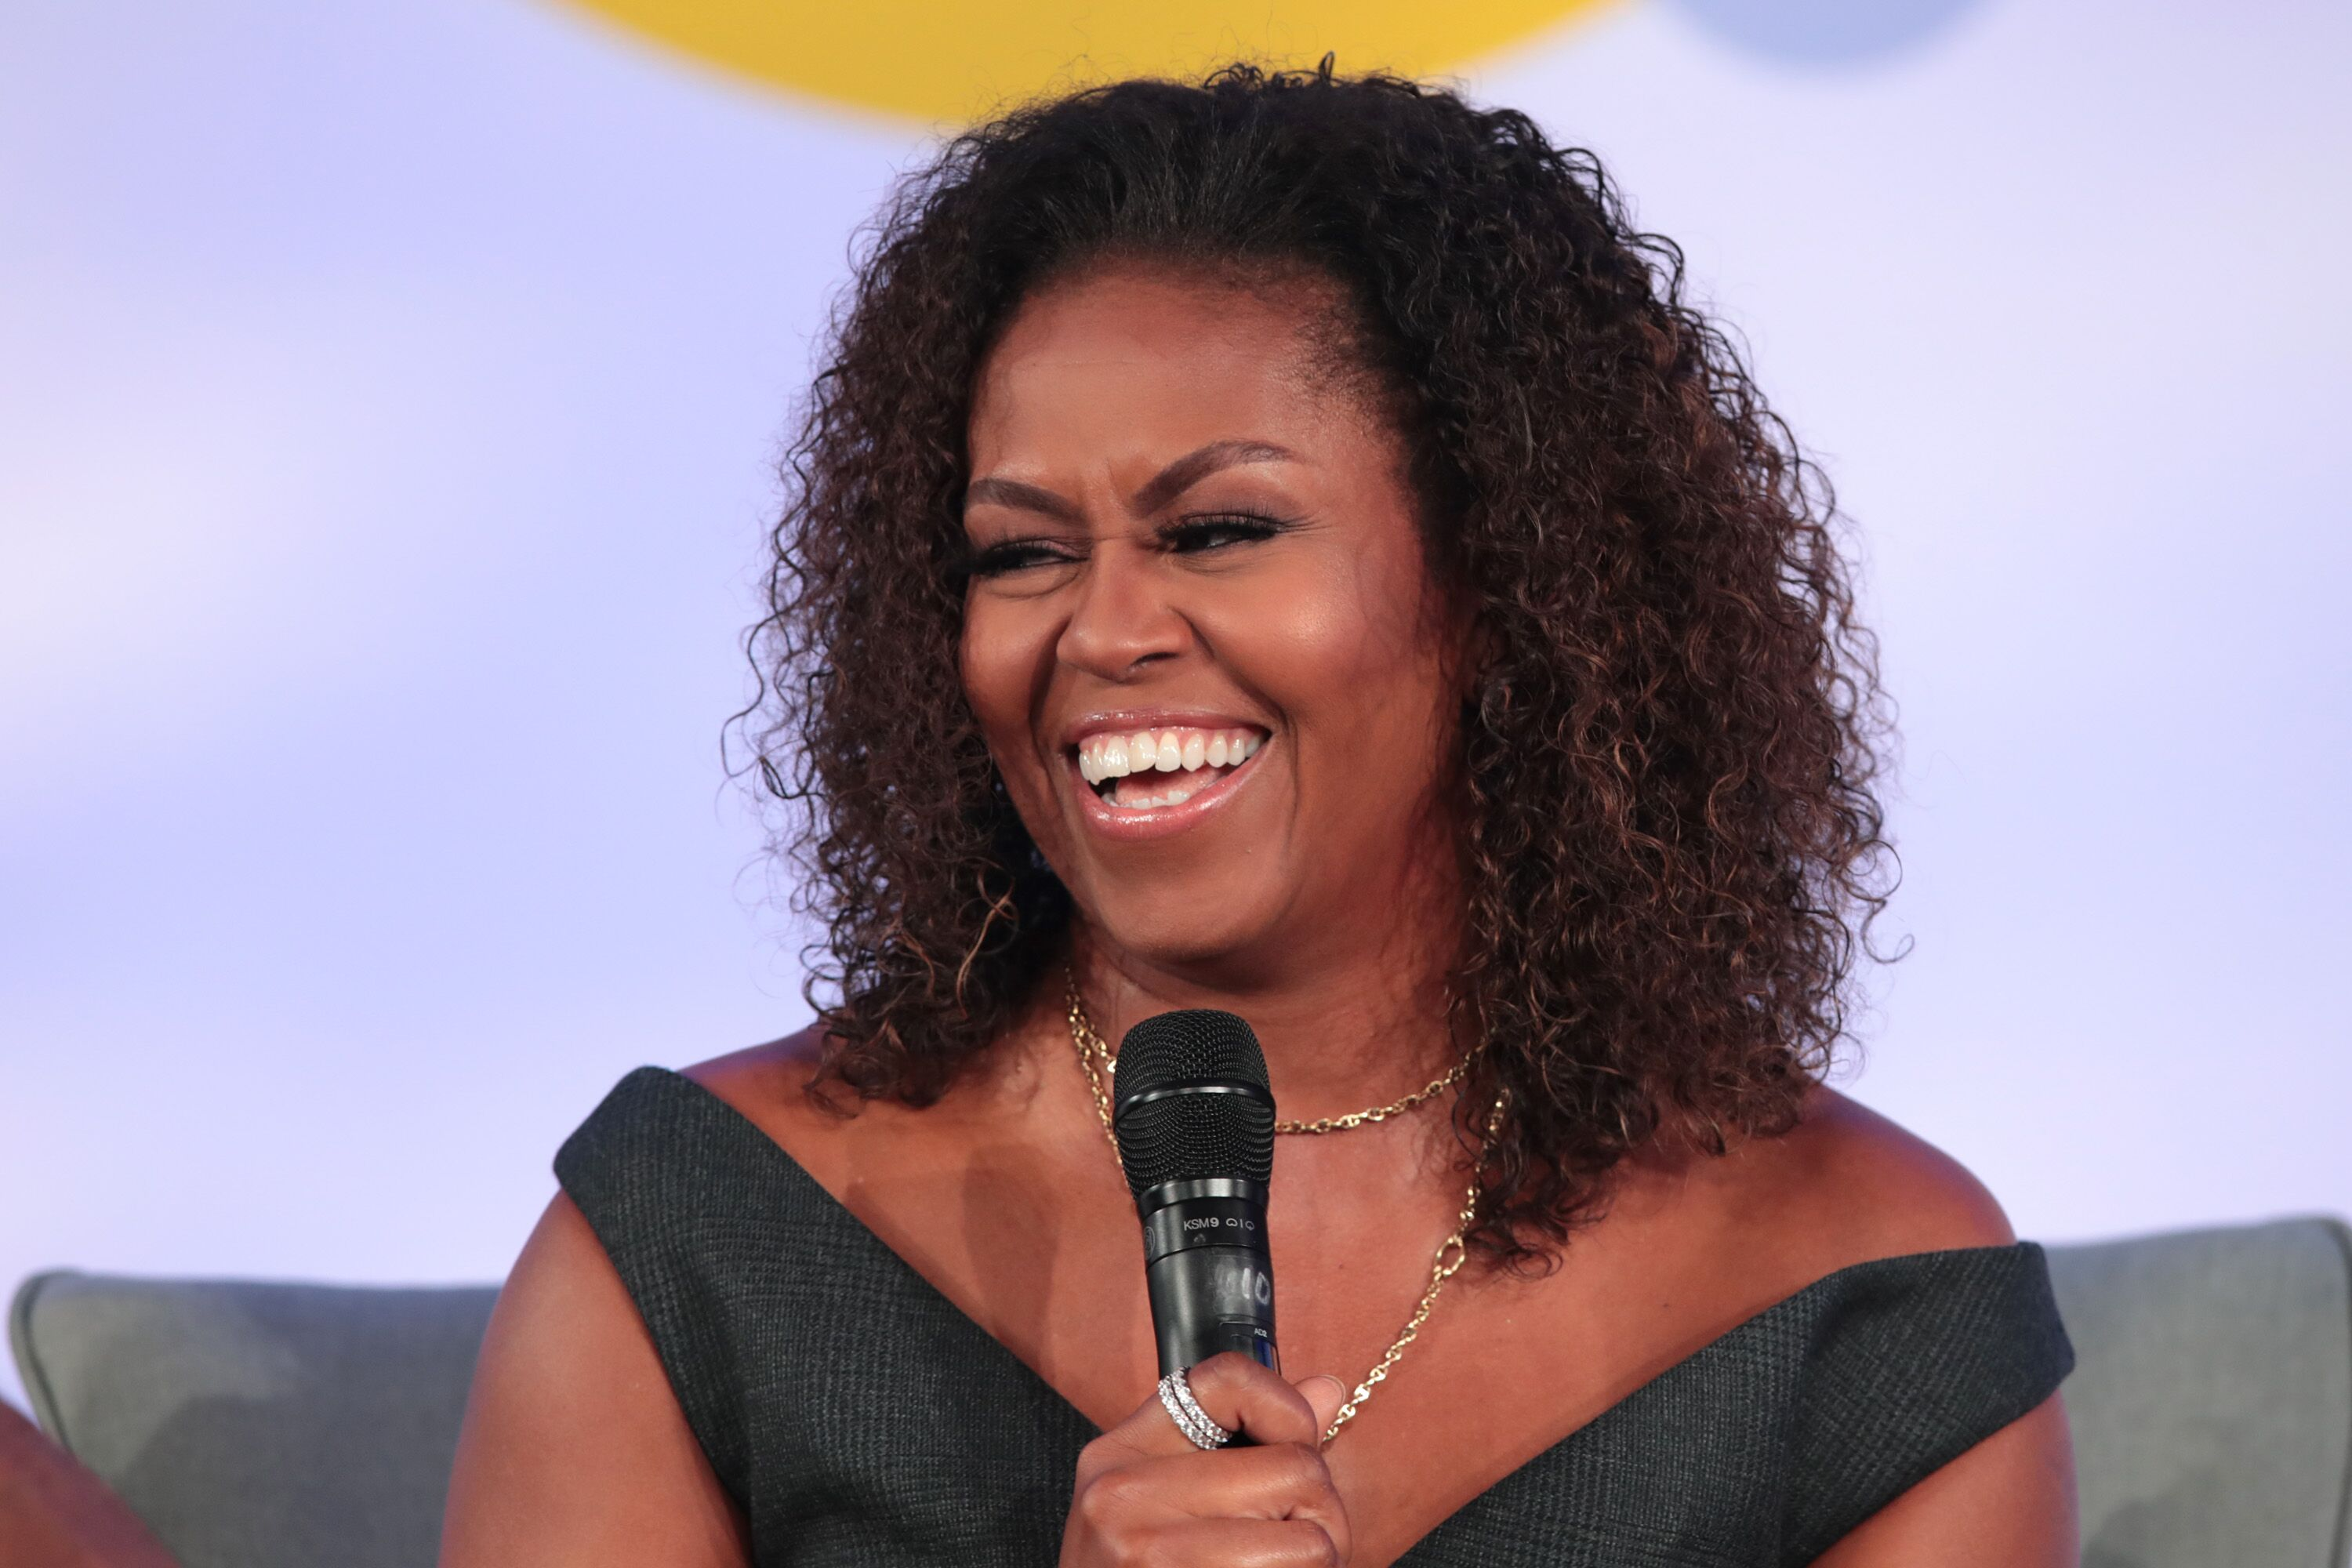 Michelle Obama speaks to guests at the Obama Foundation Summit.   Source: Getty Images